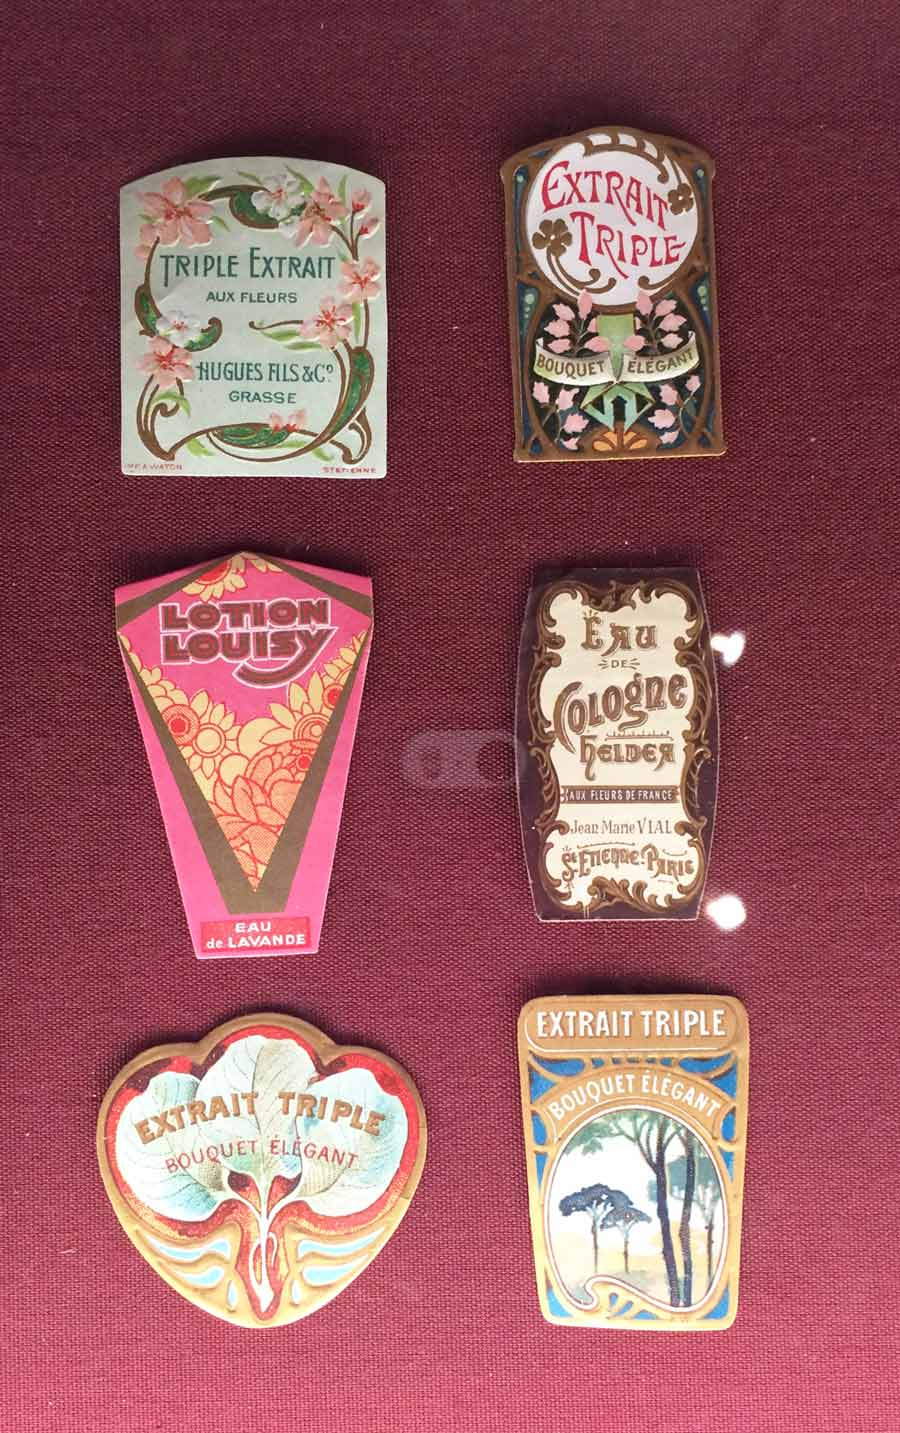 Vintage product labels